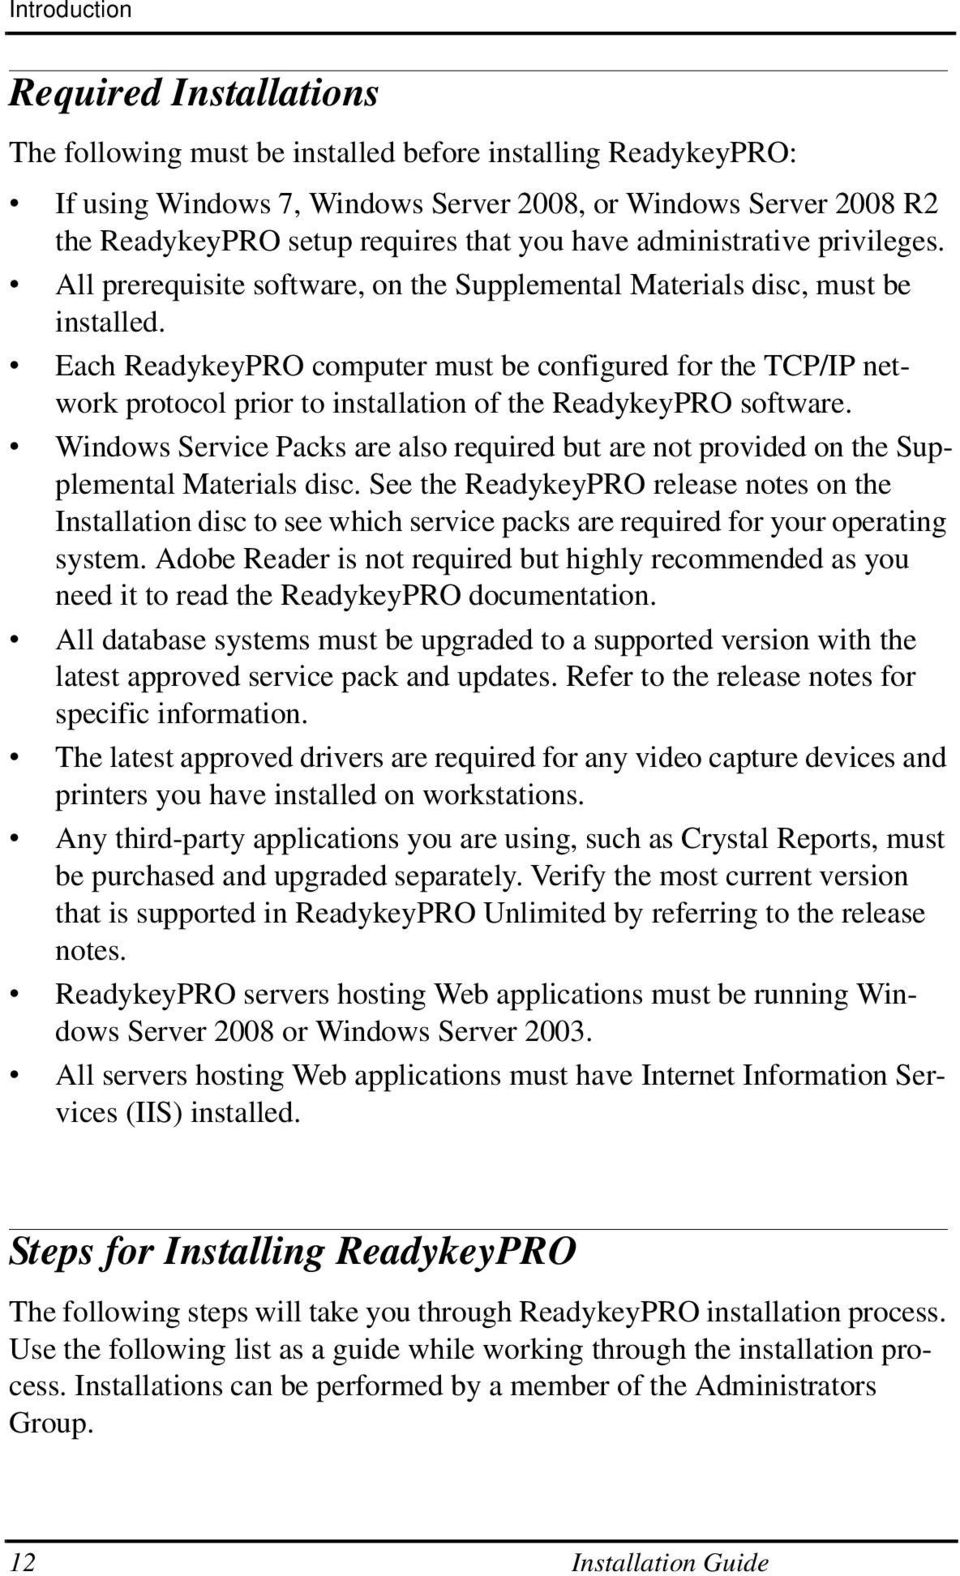 Each ReadykeyPRO computer must be configured for the TCP/IP network protocol prior to installation of the ReadykeyPRO software.